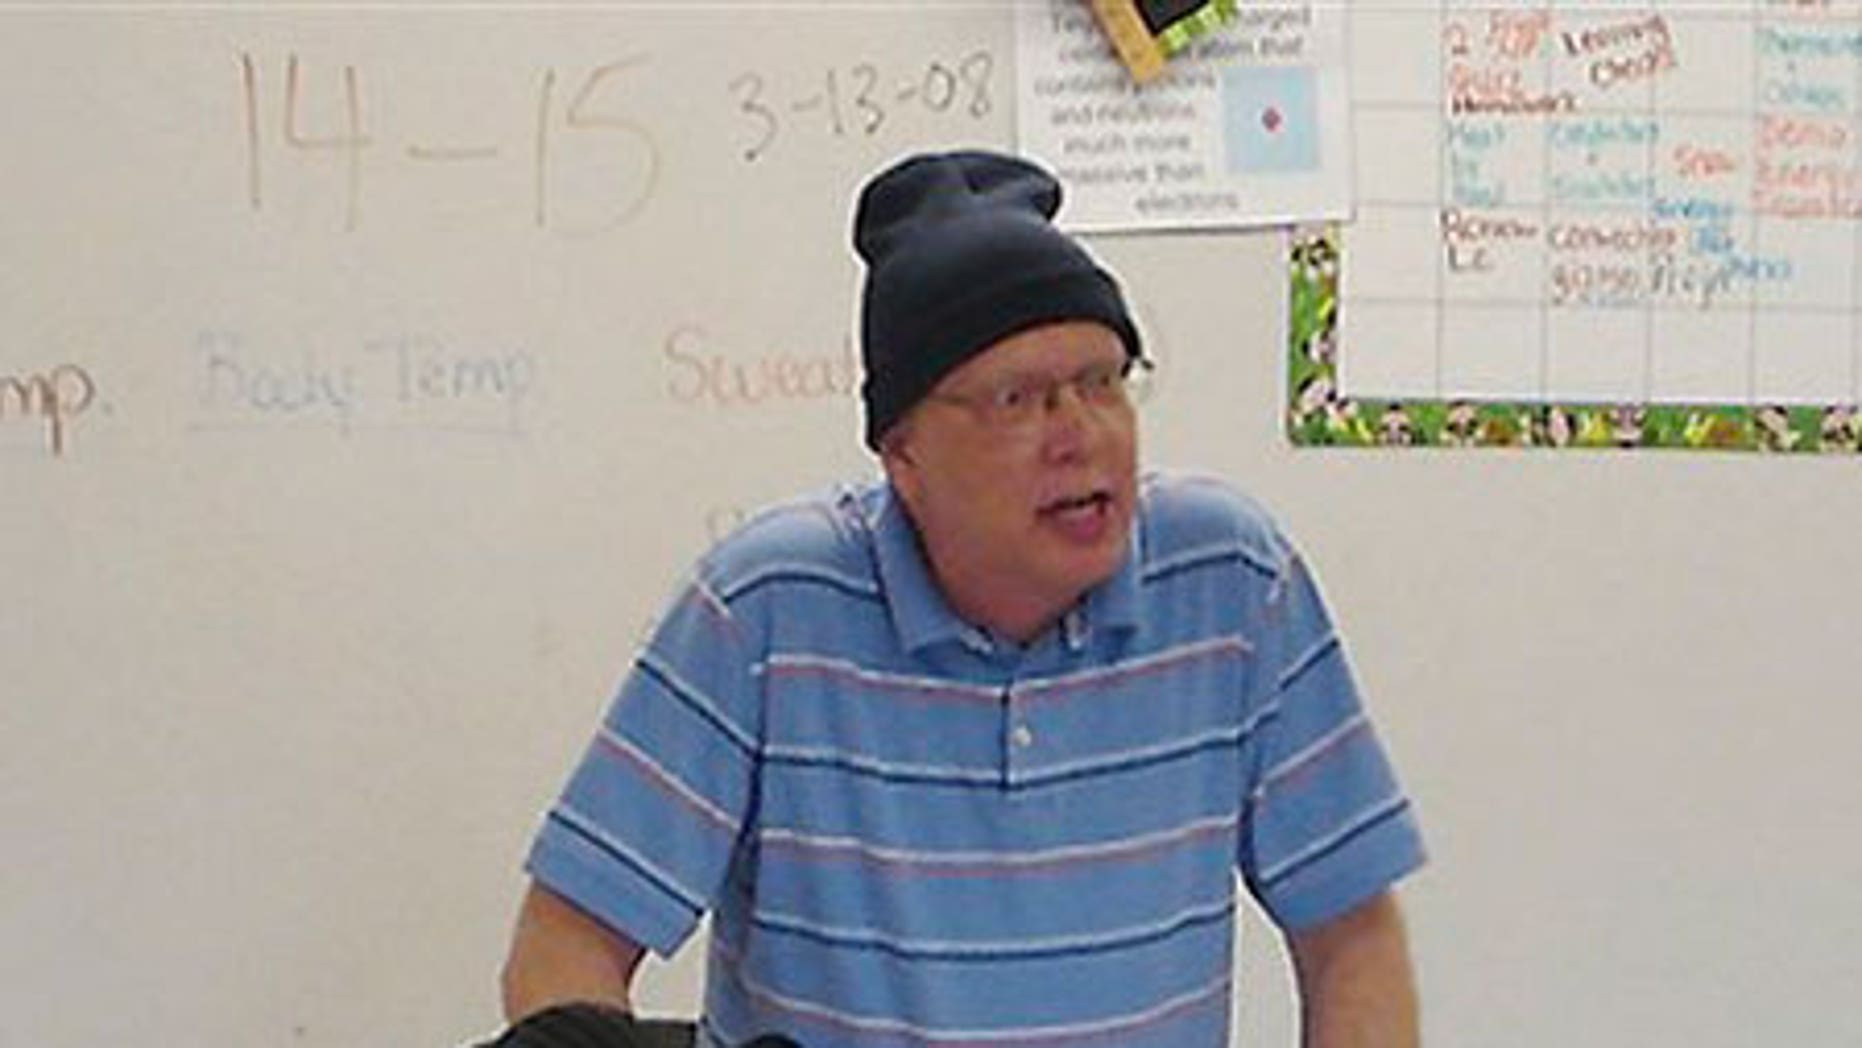 Undated 2008 photo: Bill Sparkman speaks to a 7th grade class during a lesson about sound waves.